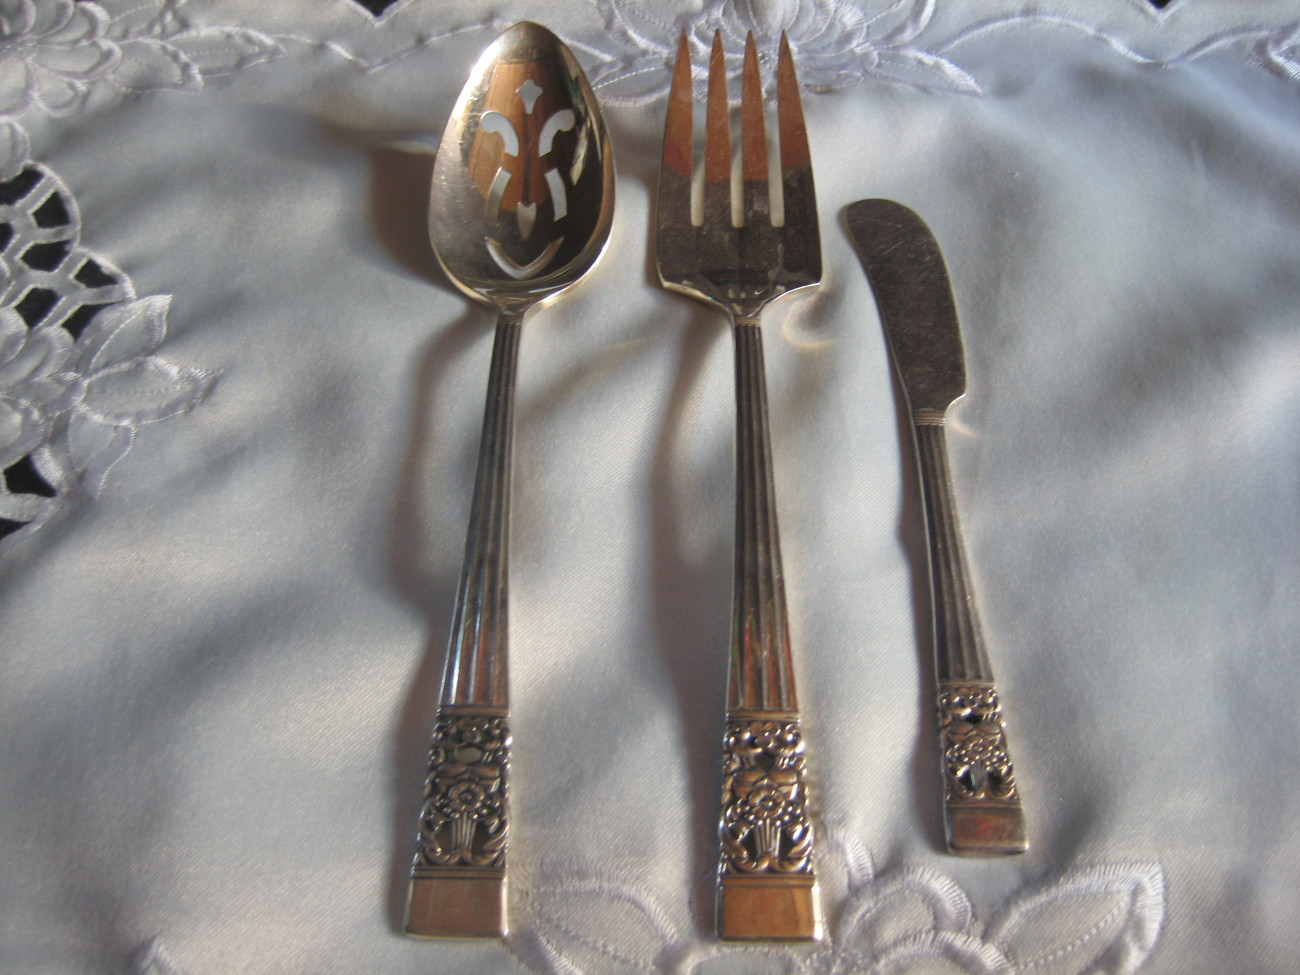 Silver 3 piece serving set